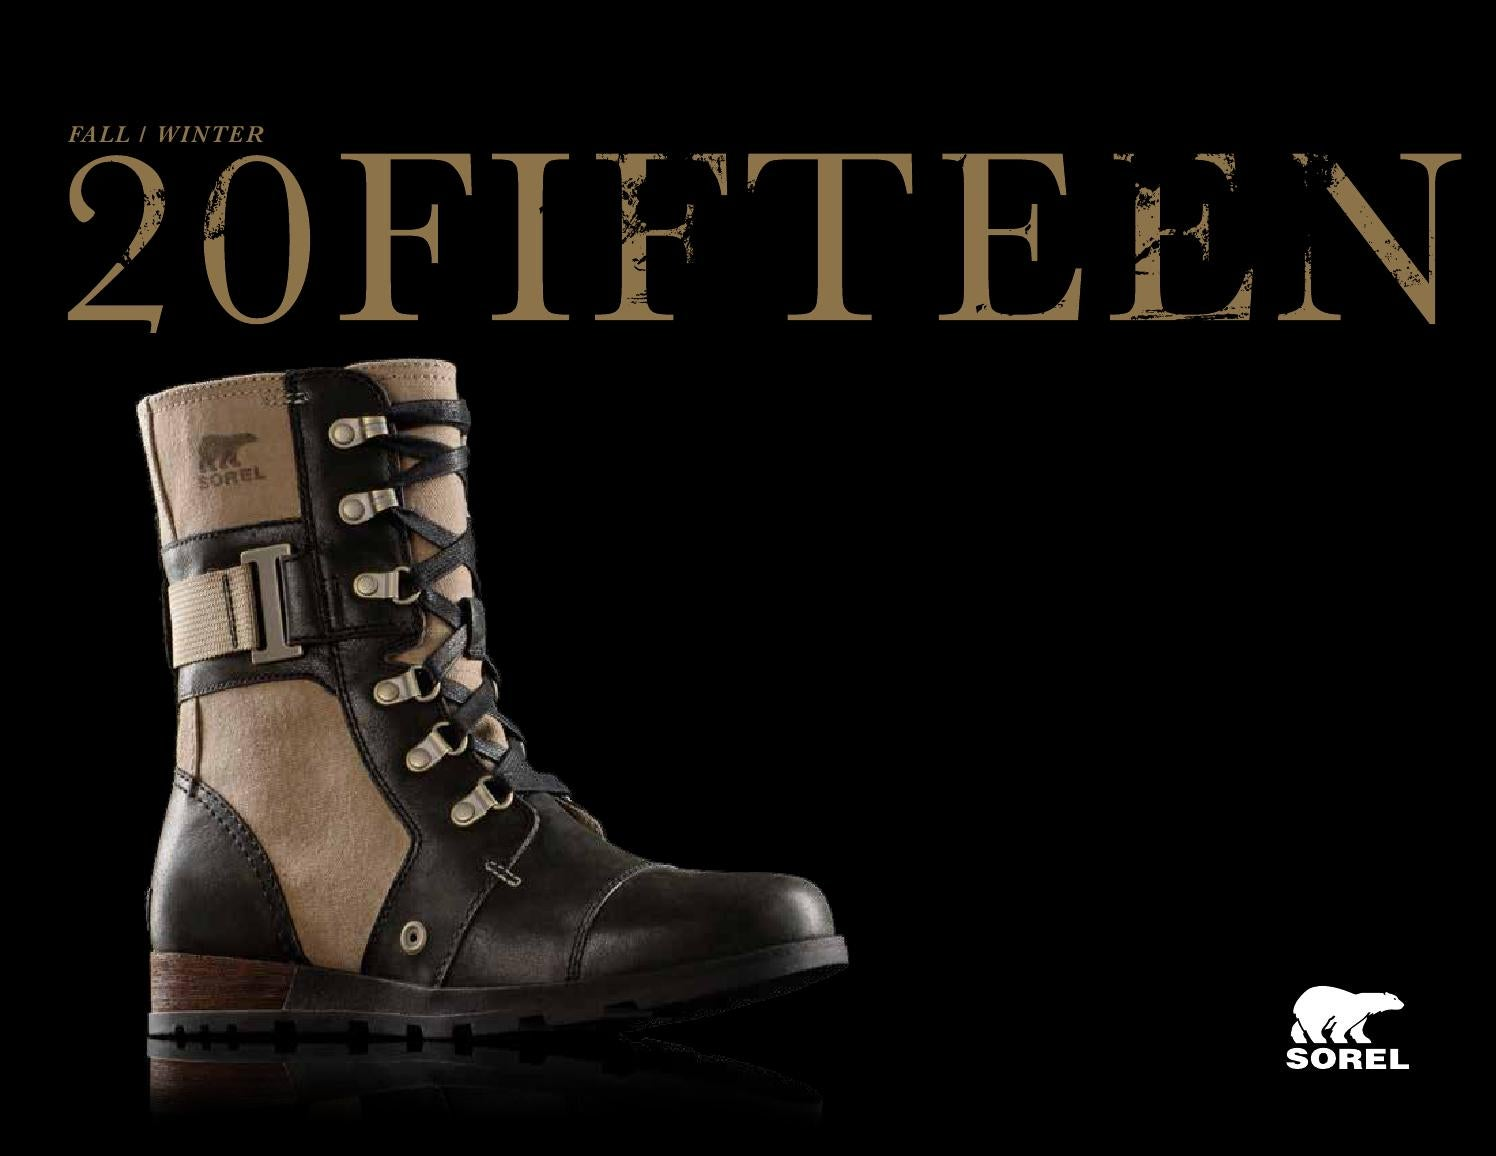 e8c94c6dc3f56 SOREL F15 Catalog by SOREL - issuu